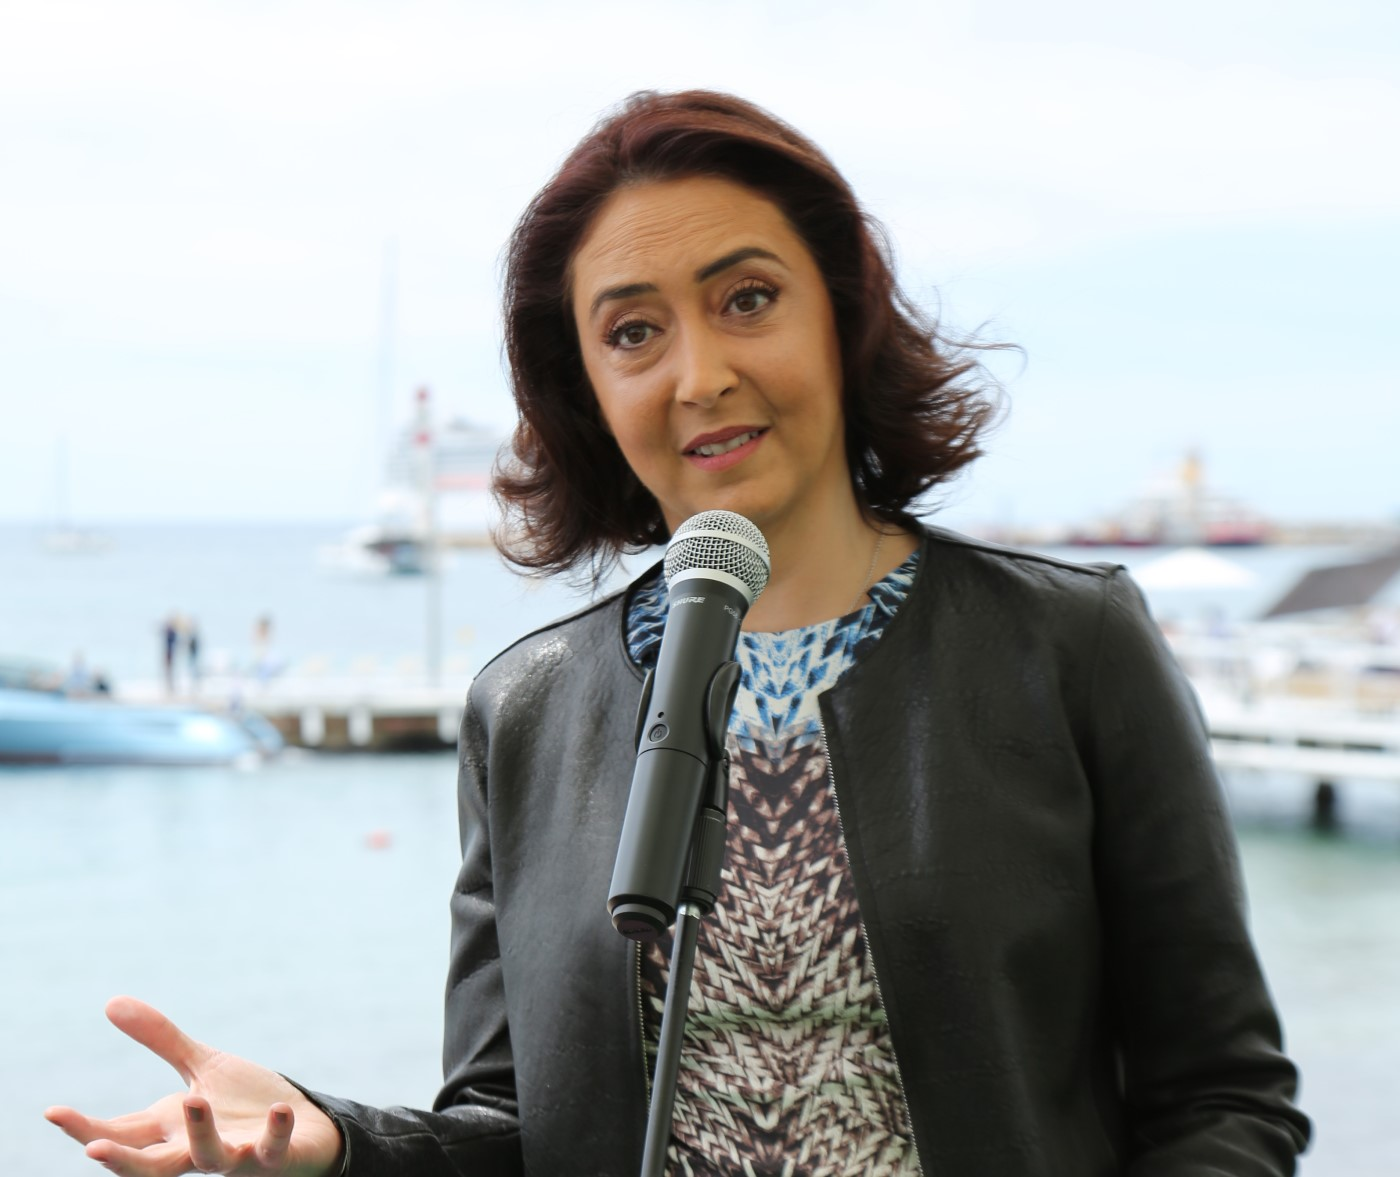 Princess Rym Ali, the festival president, speaks to reporters during a news conference in Cannes.(Courtesy of The Royal Film Commission)